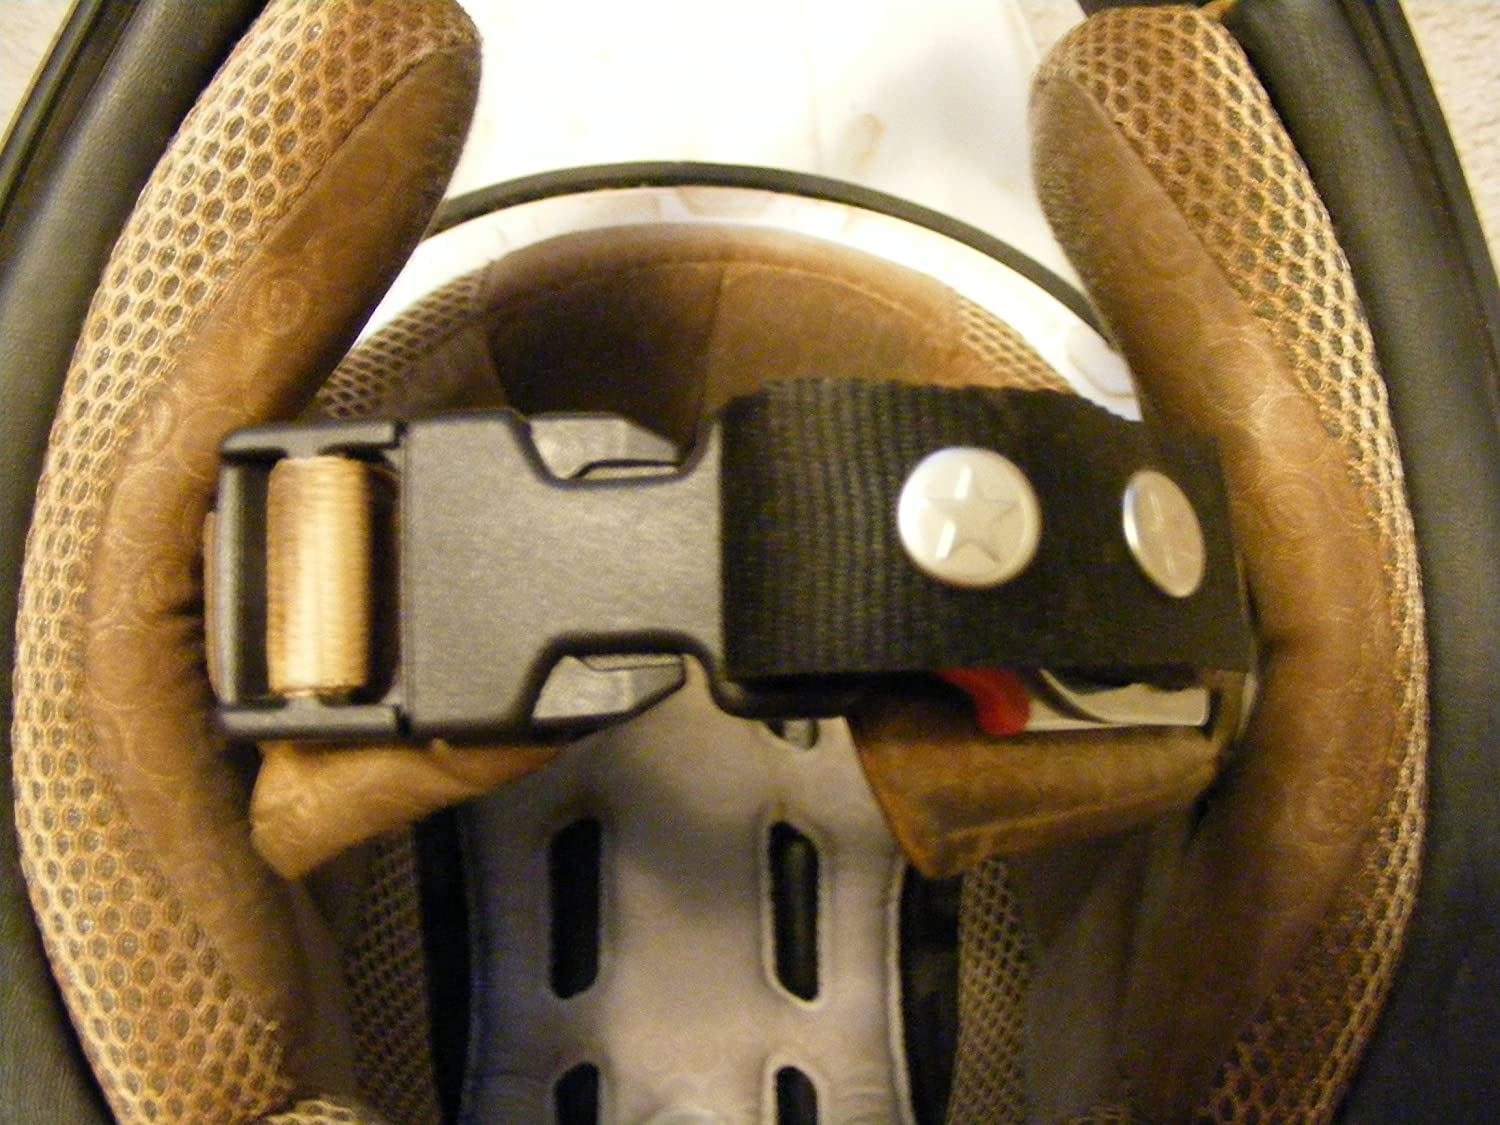 Motorcycle Dirtbike Black Helmet Quick Release Chin Strap Buckle Clip Dirt Bike Motor Cycle Fits Size XL and Larger Helmets Not echo Chin Pincher